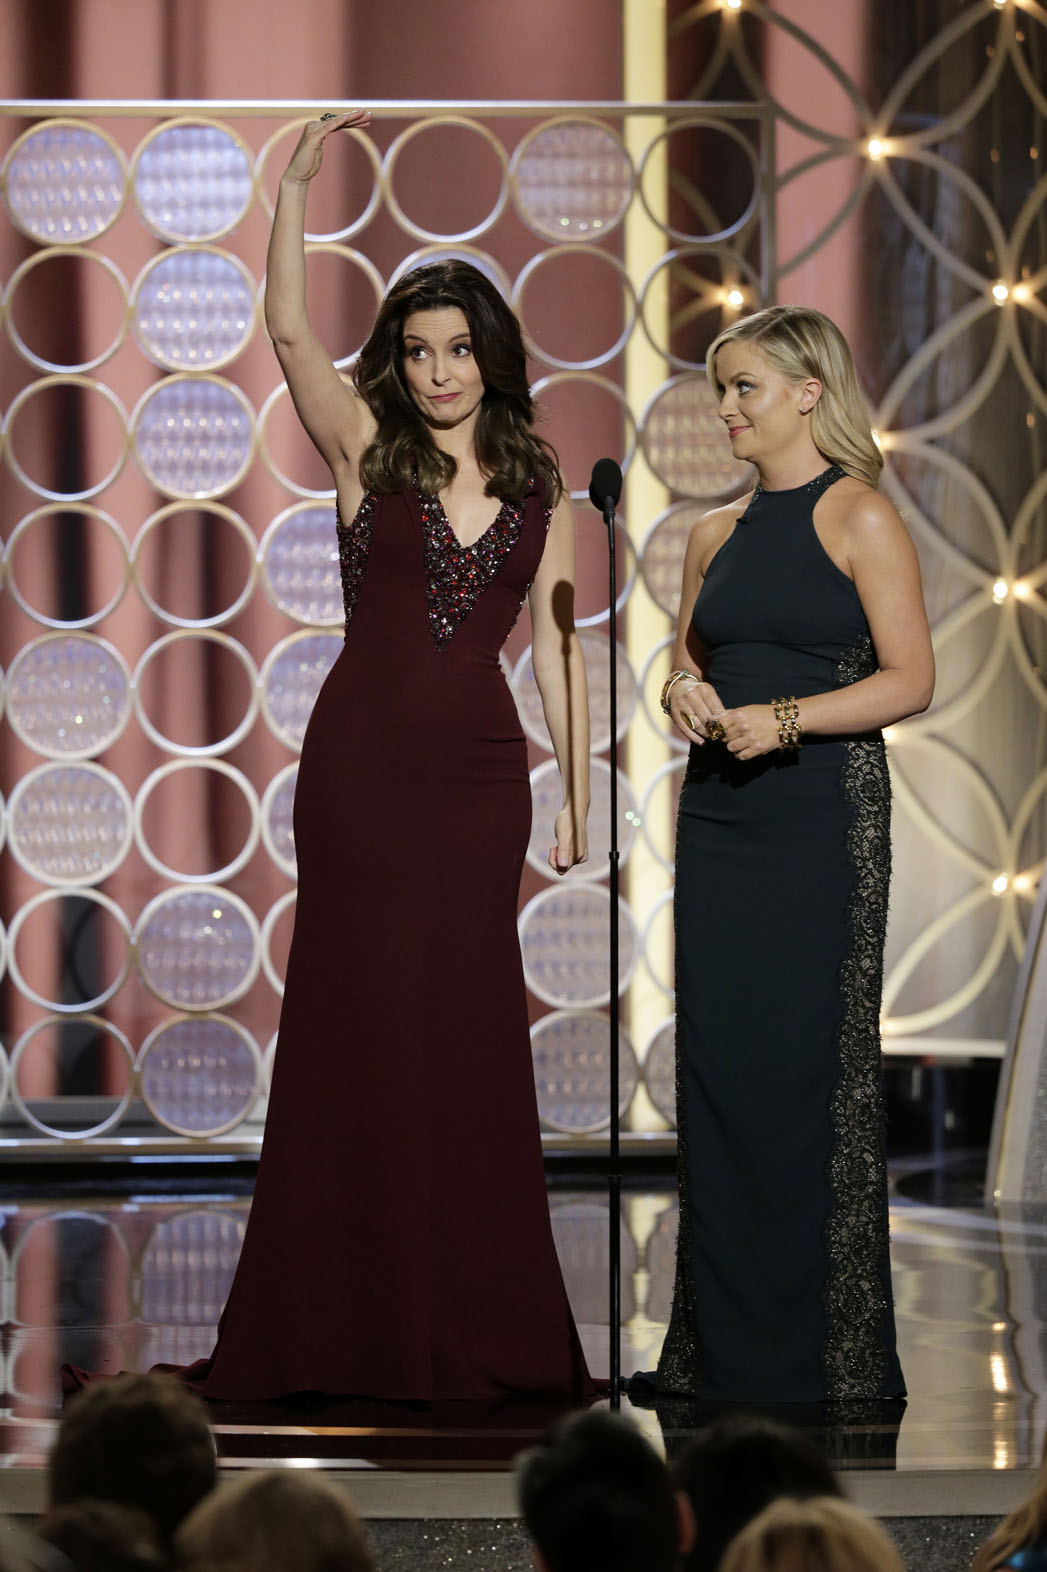 Tina Fey, Amy Poehler Riff on the Nominees in Their Monologue